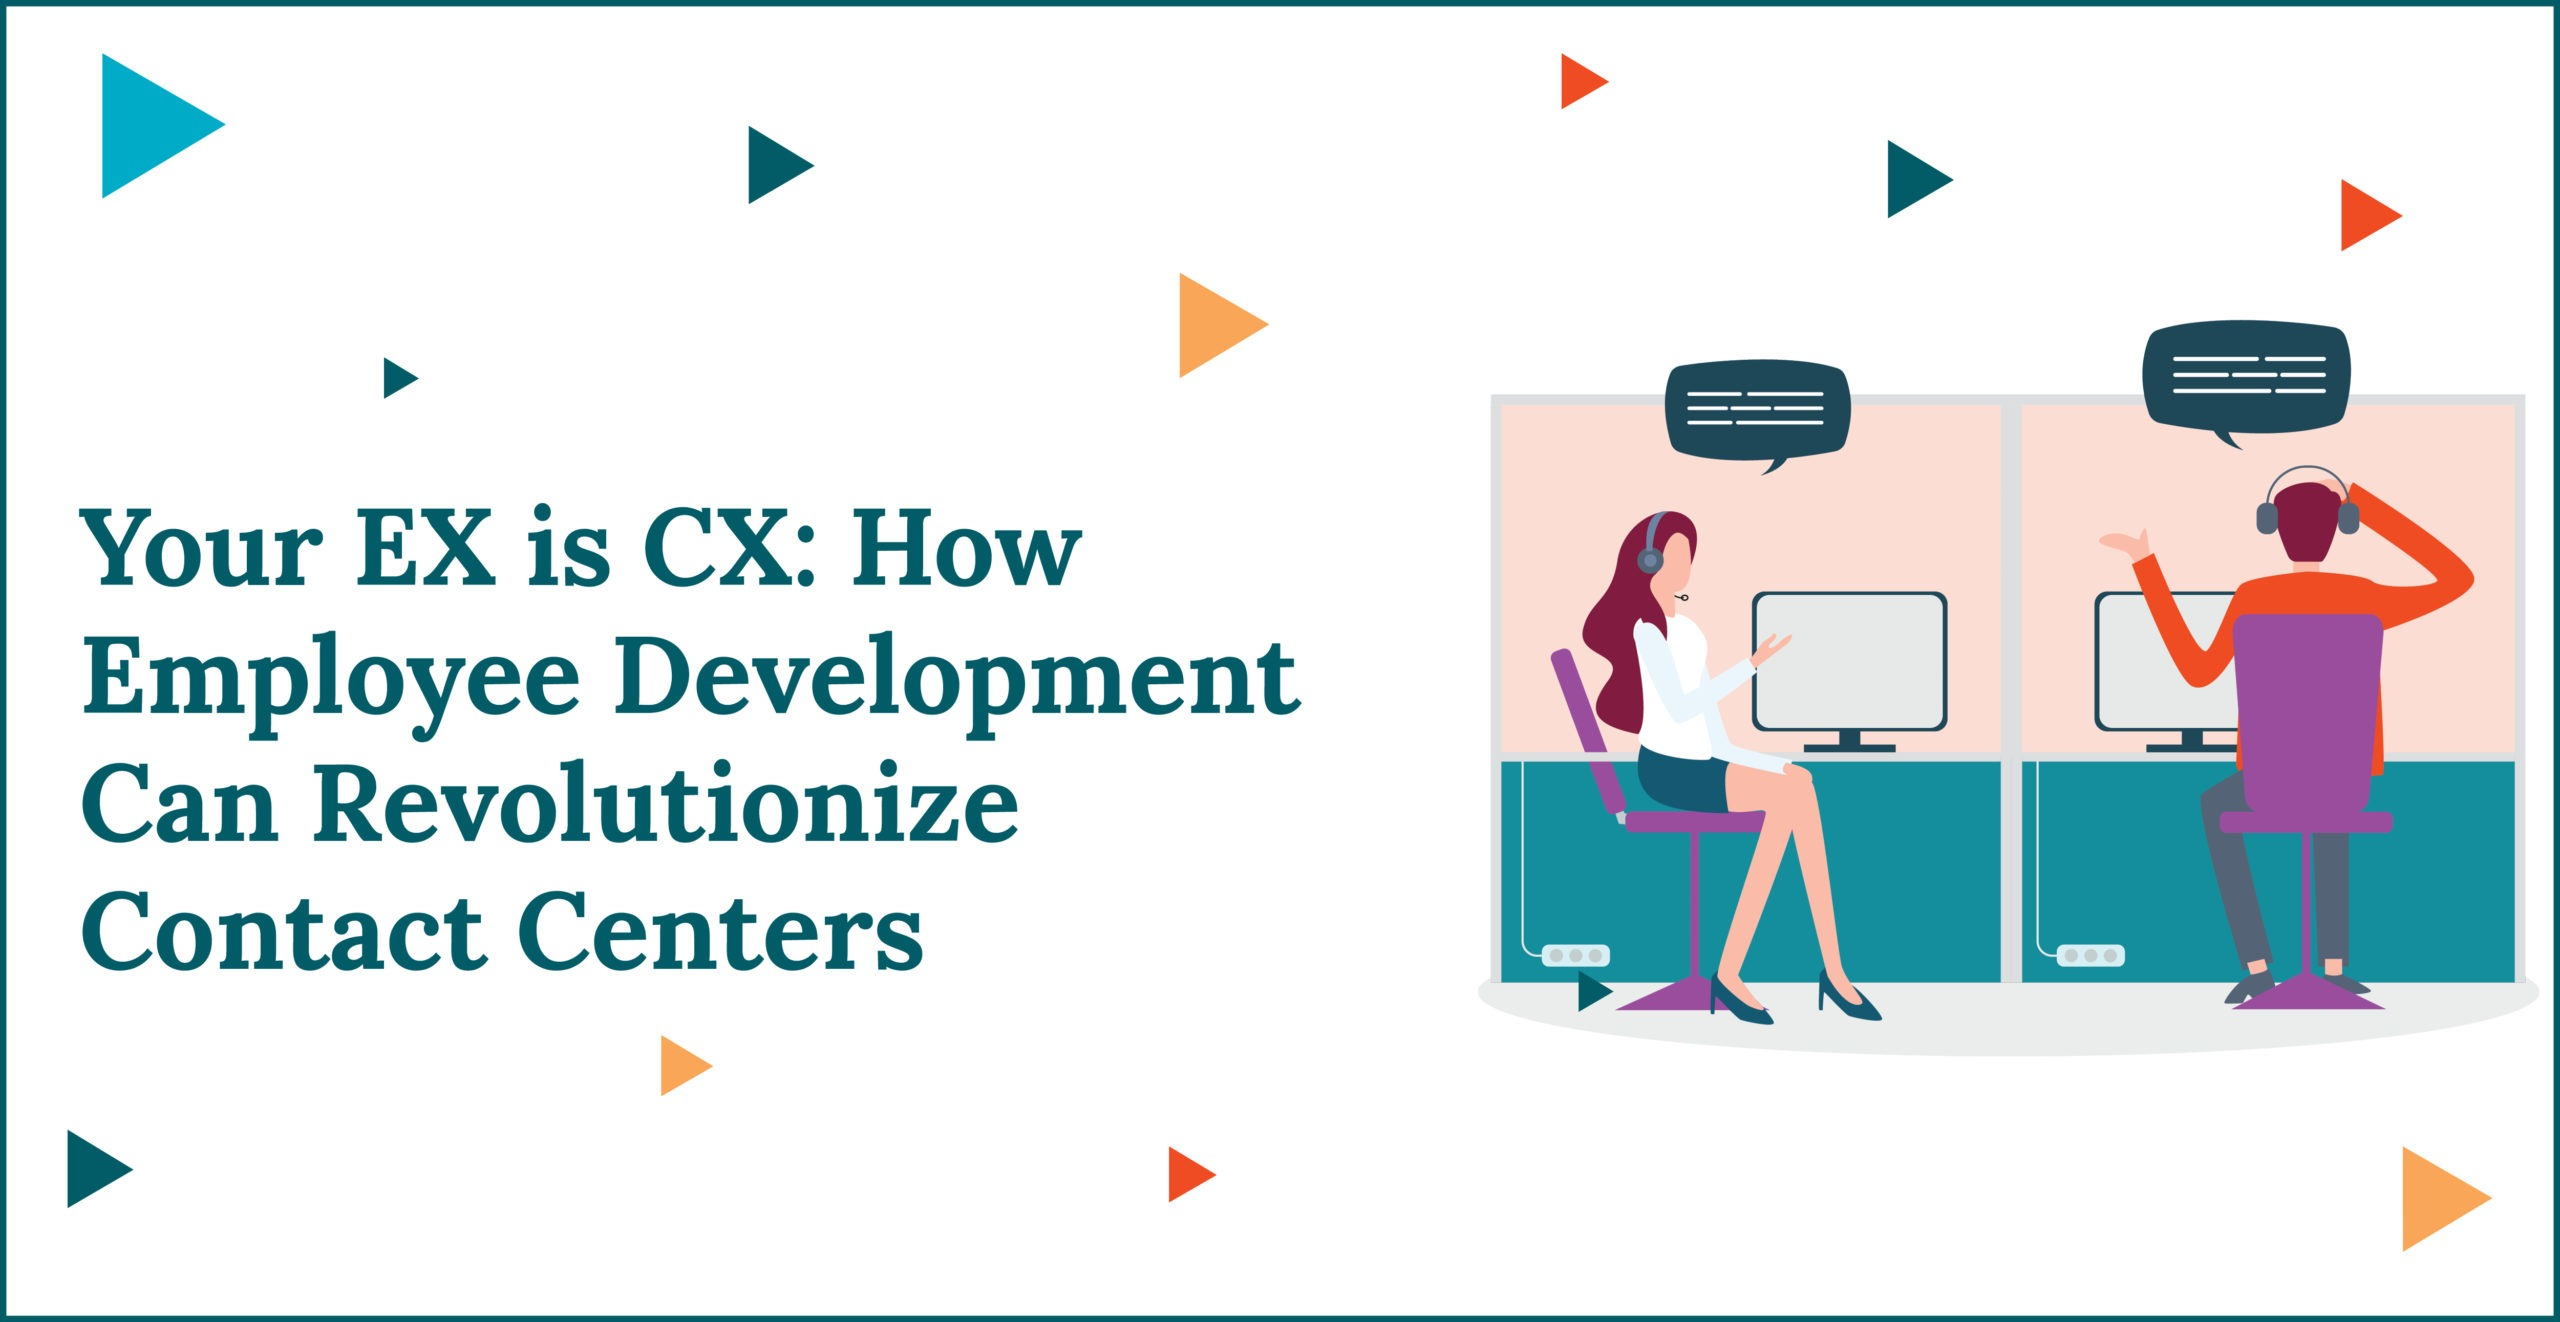 Your EX is CX: How Employee Development Can Revolutionize Contact Centers